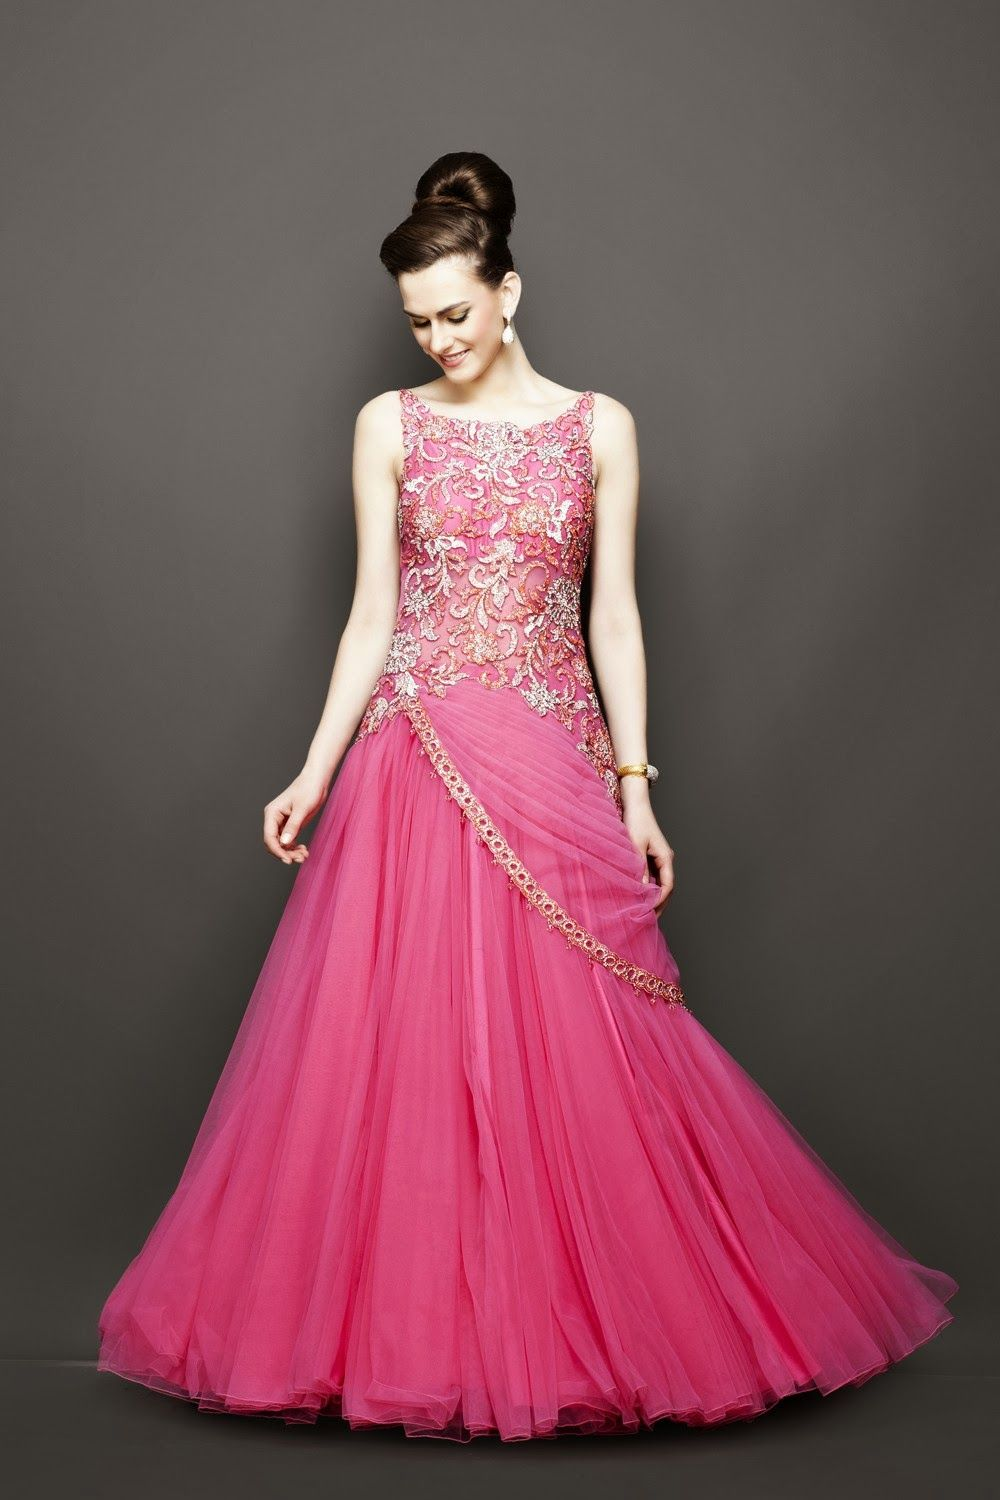 Evening dress for wedding in pink color dresses for Dresses for afternoon wedding